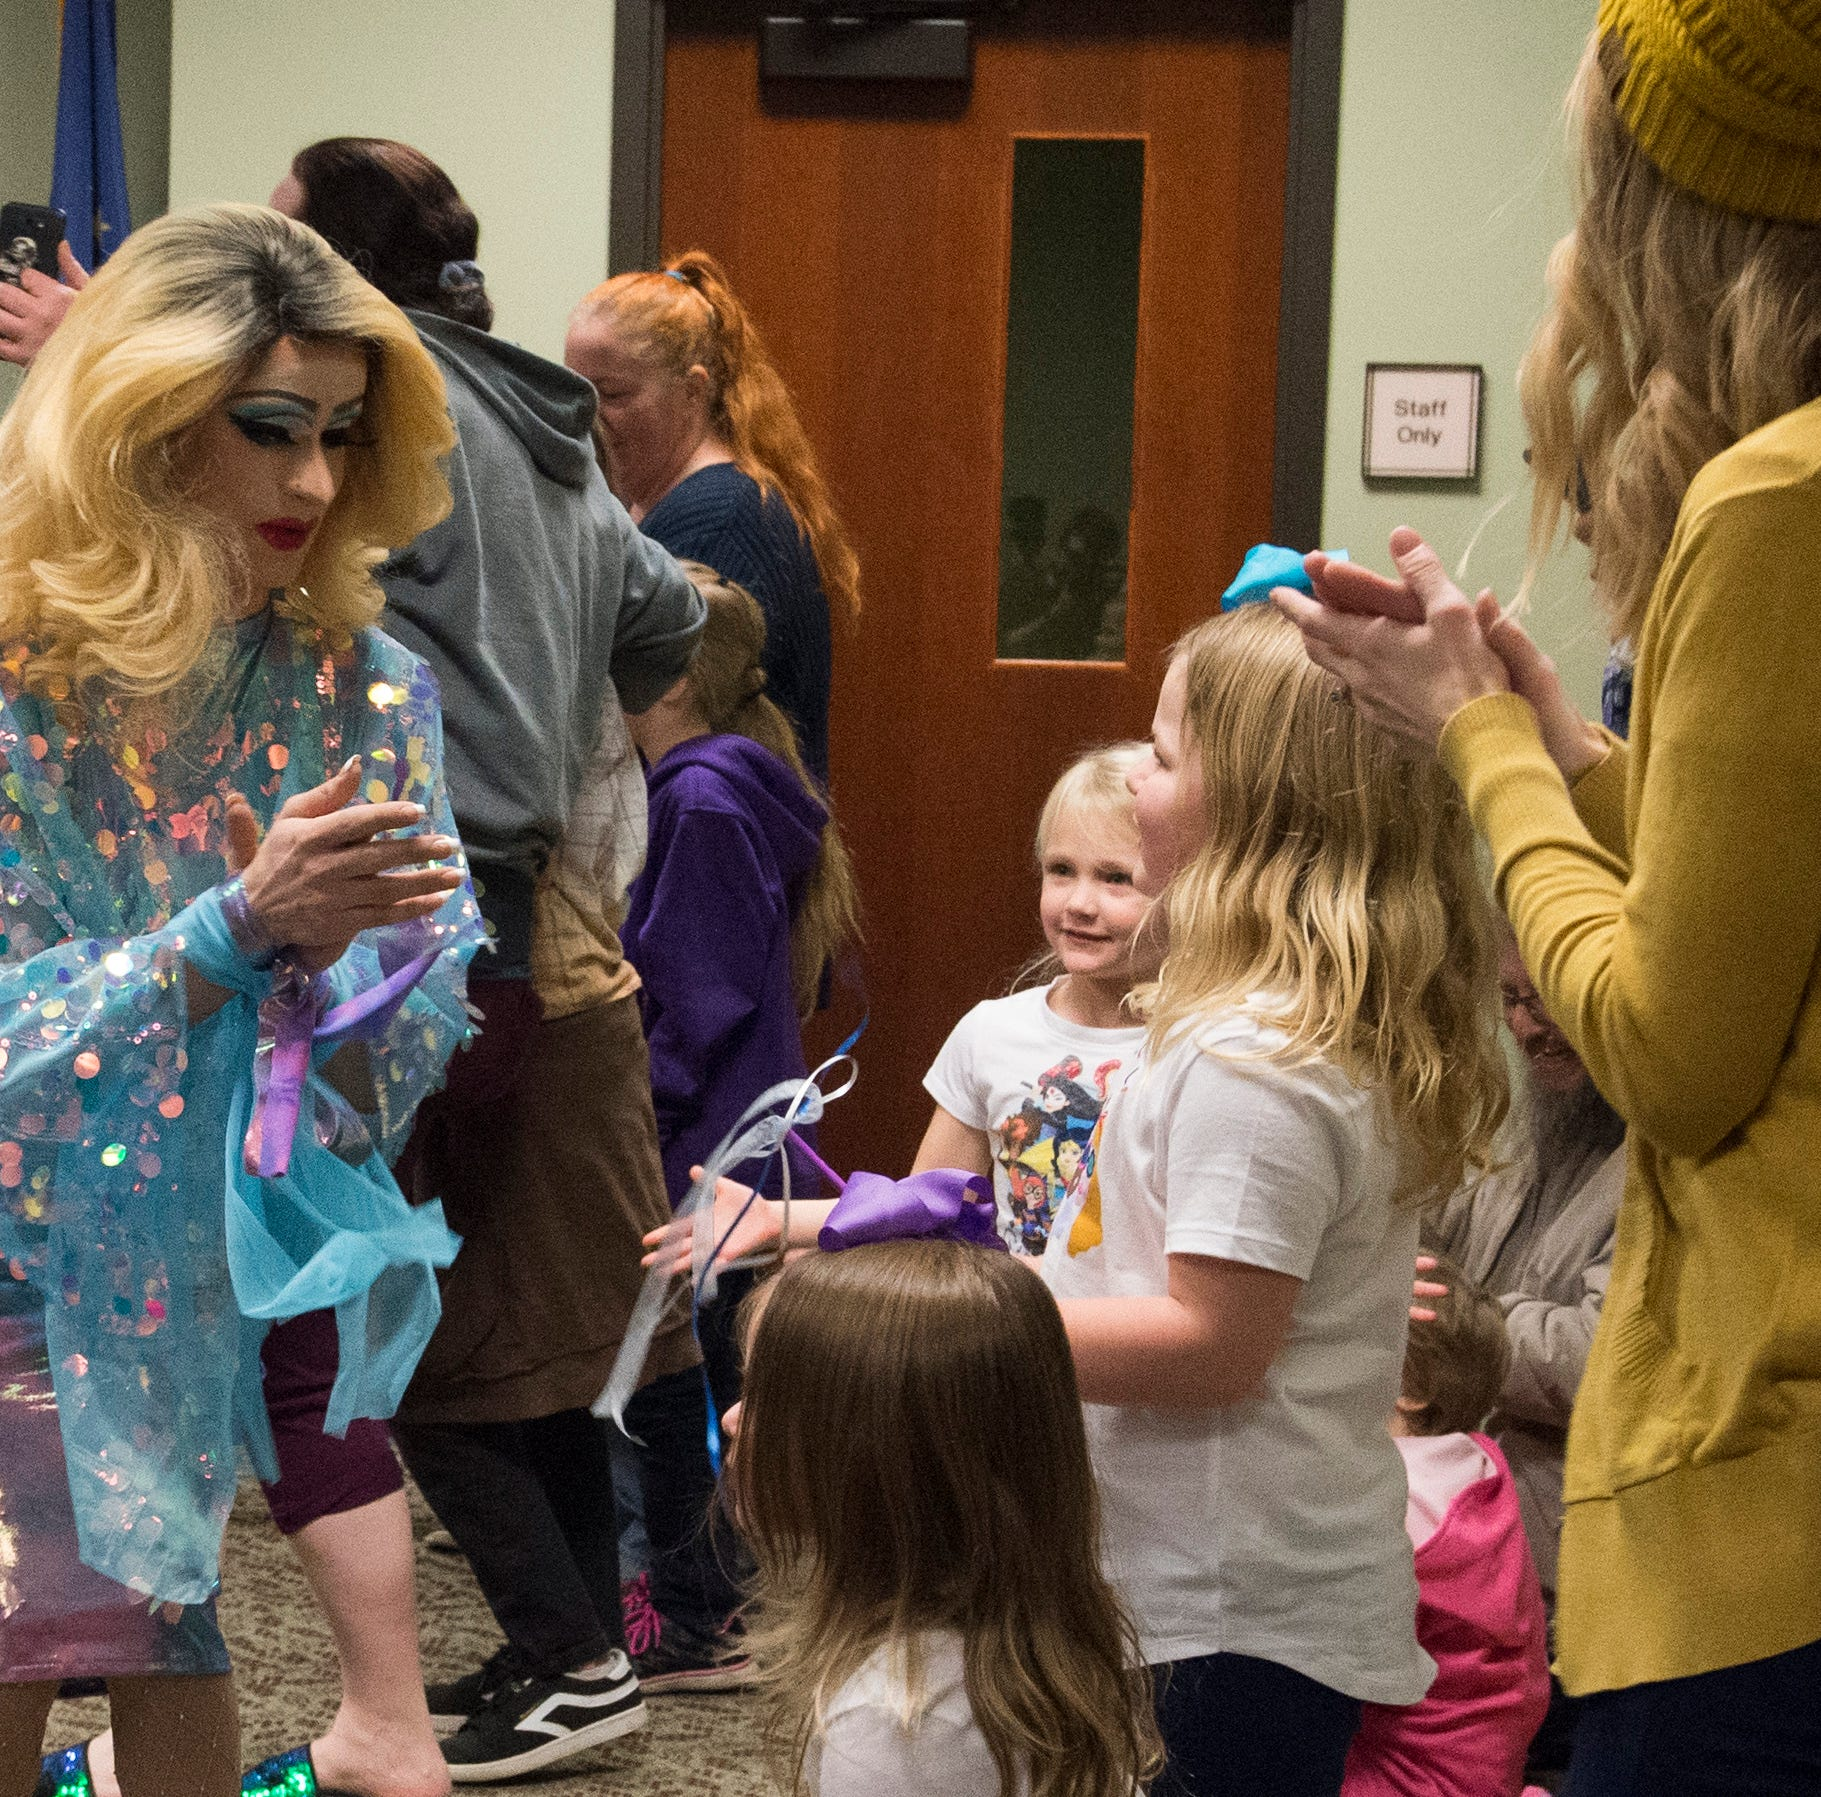 EVPL Drag Queen Story Hour is over. Here's what happened